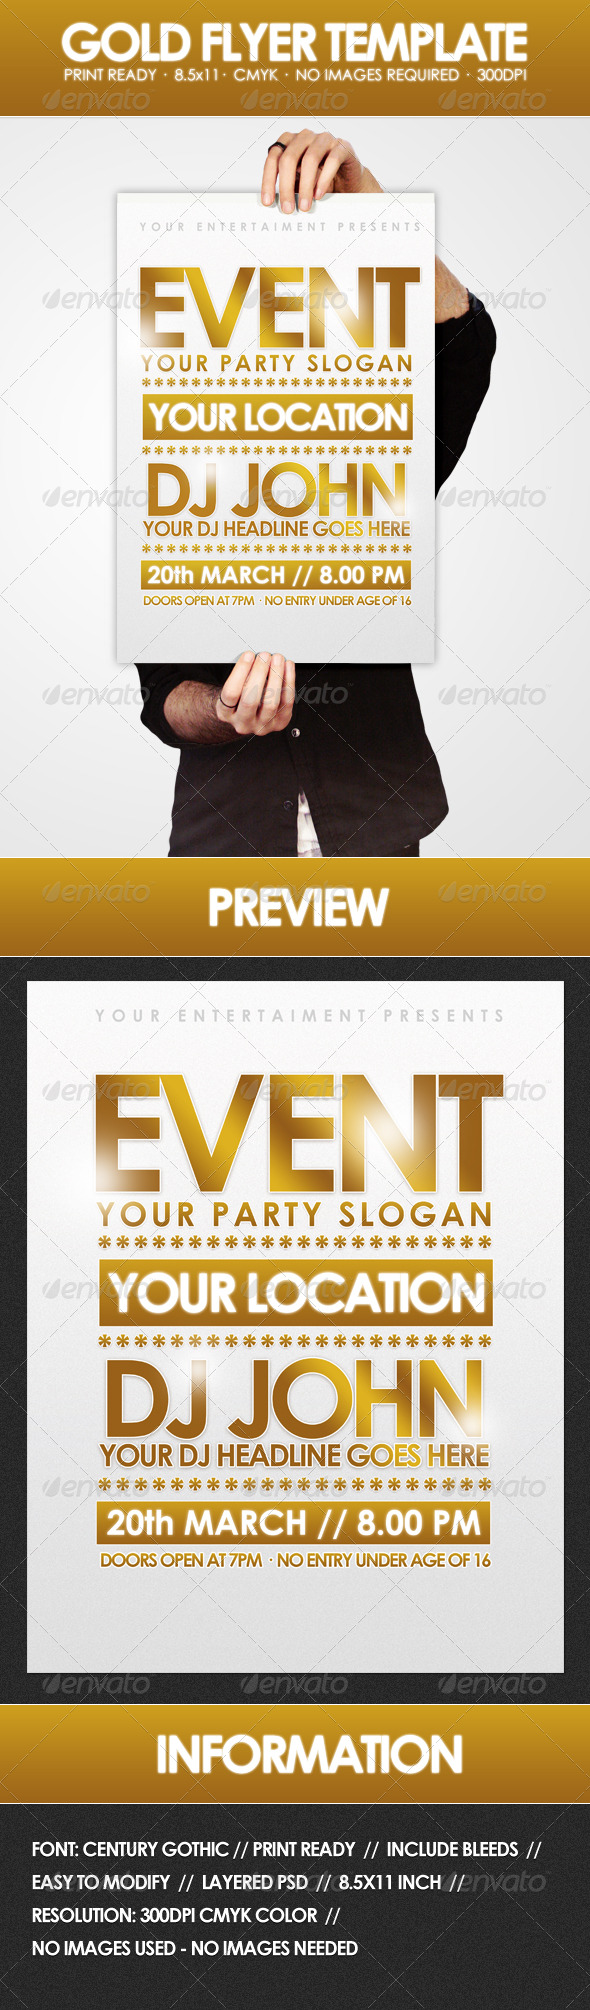 GraphicRiver Gold Flyer Template 162333